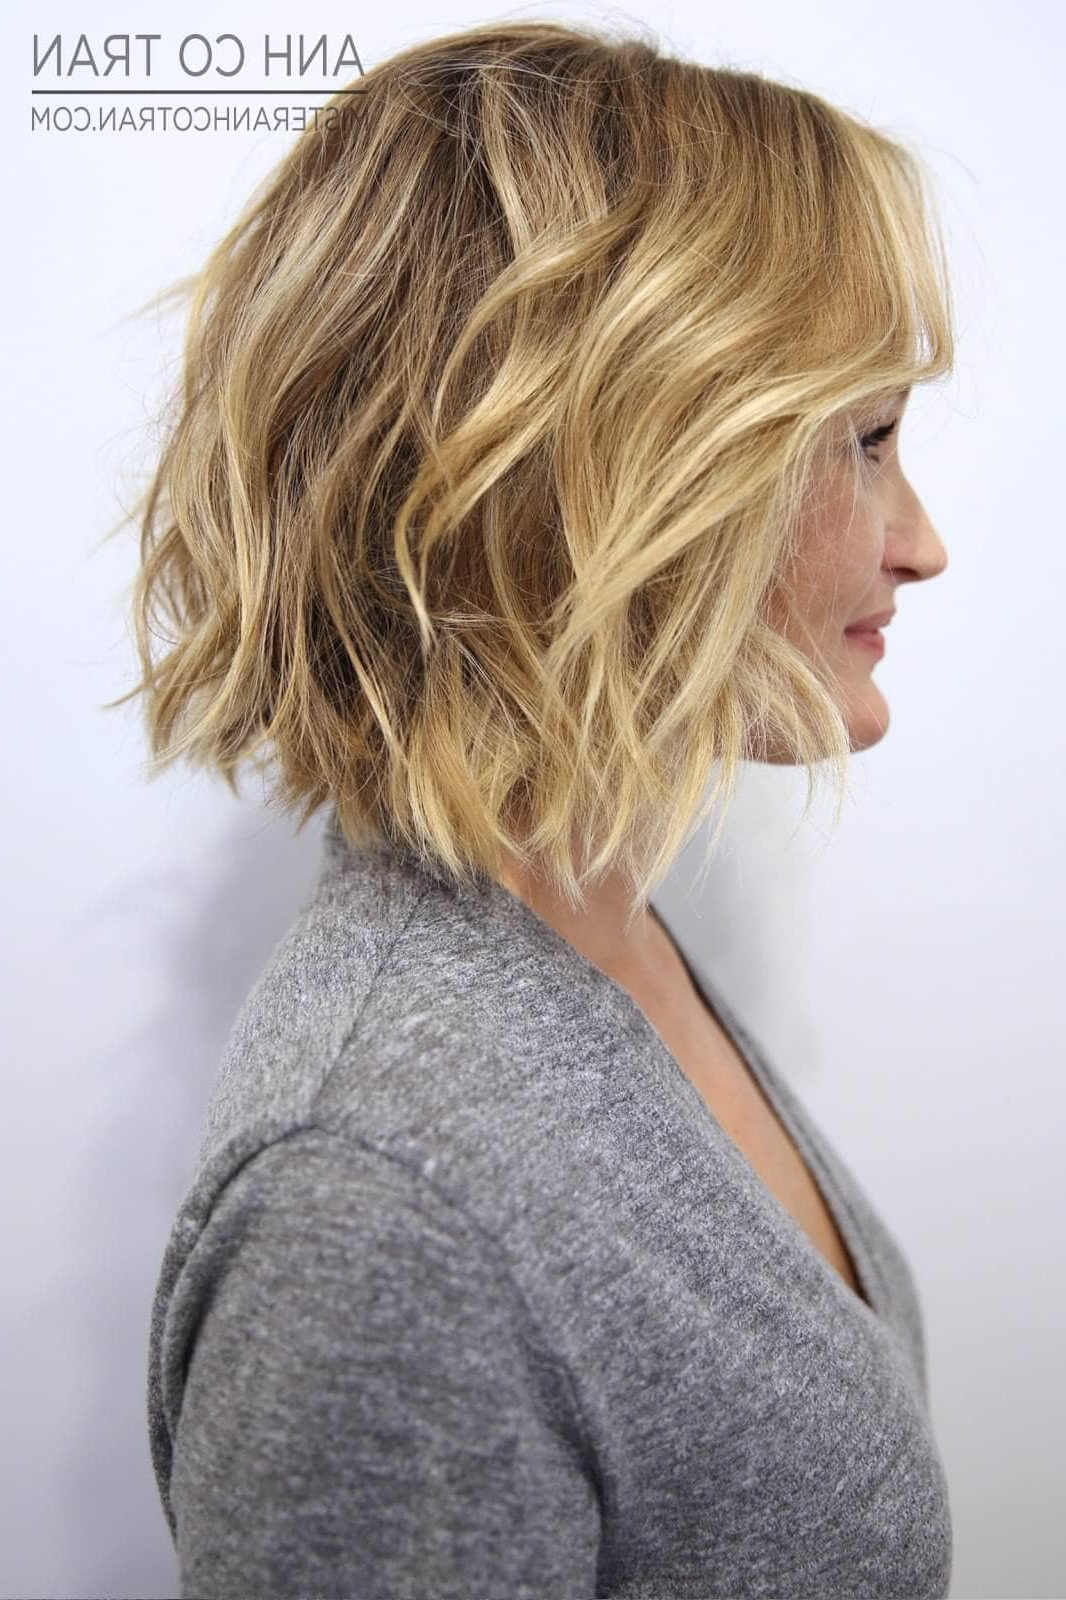 Famous Shoulder Grazing Razored Haircuts For Straight Hair Regarding 50 Ways To Wear Short Hair With Bangs For A Fresh New Look (View 14 of 20)